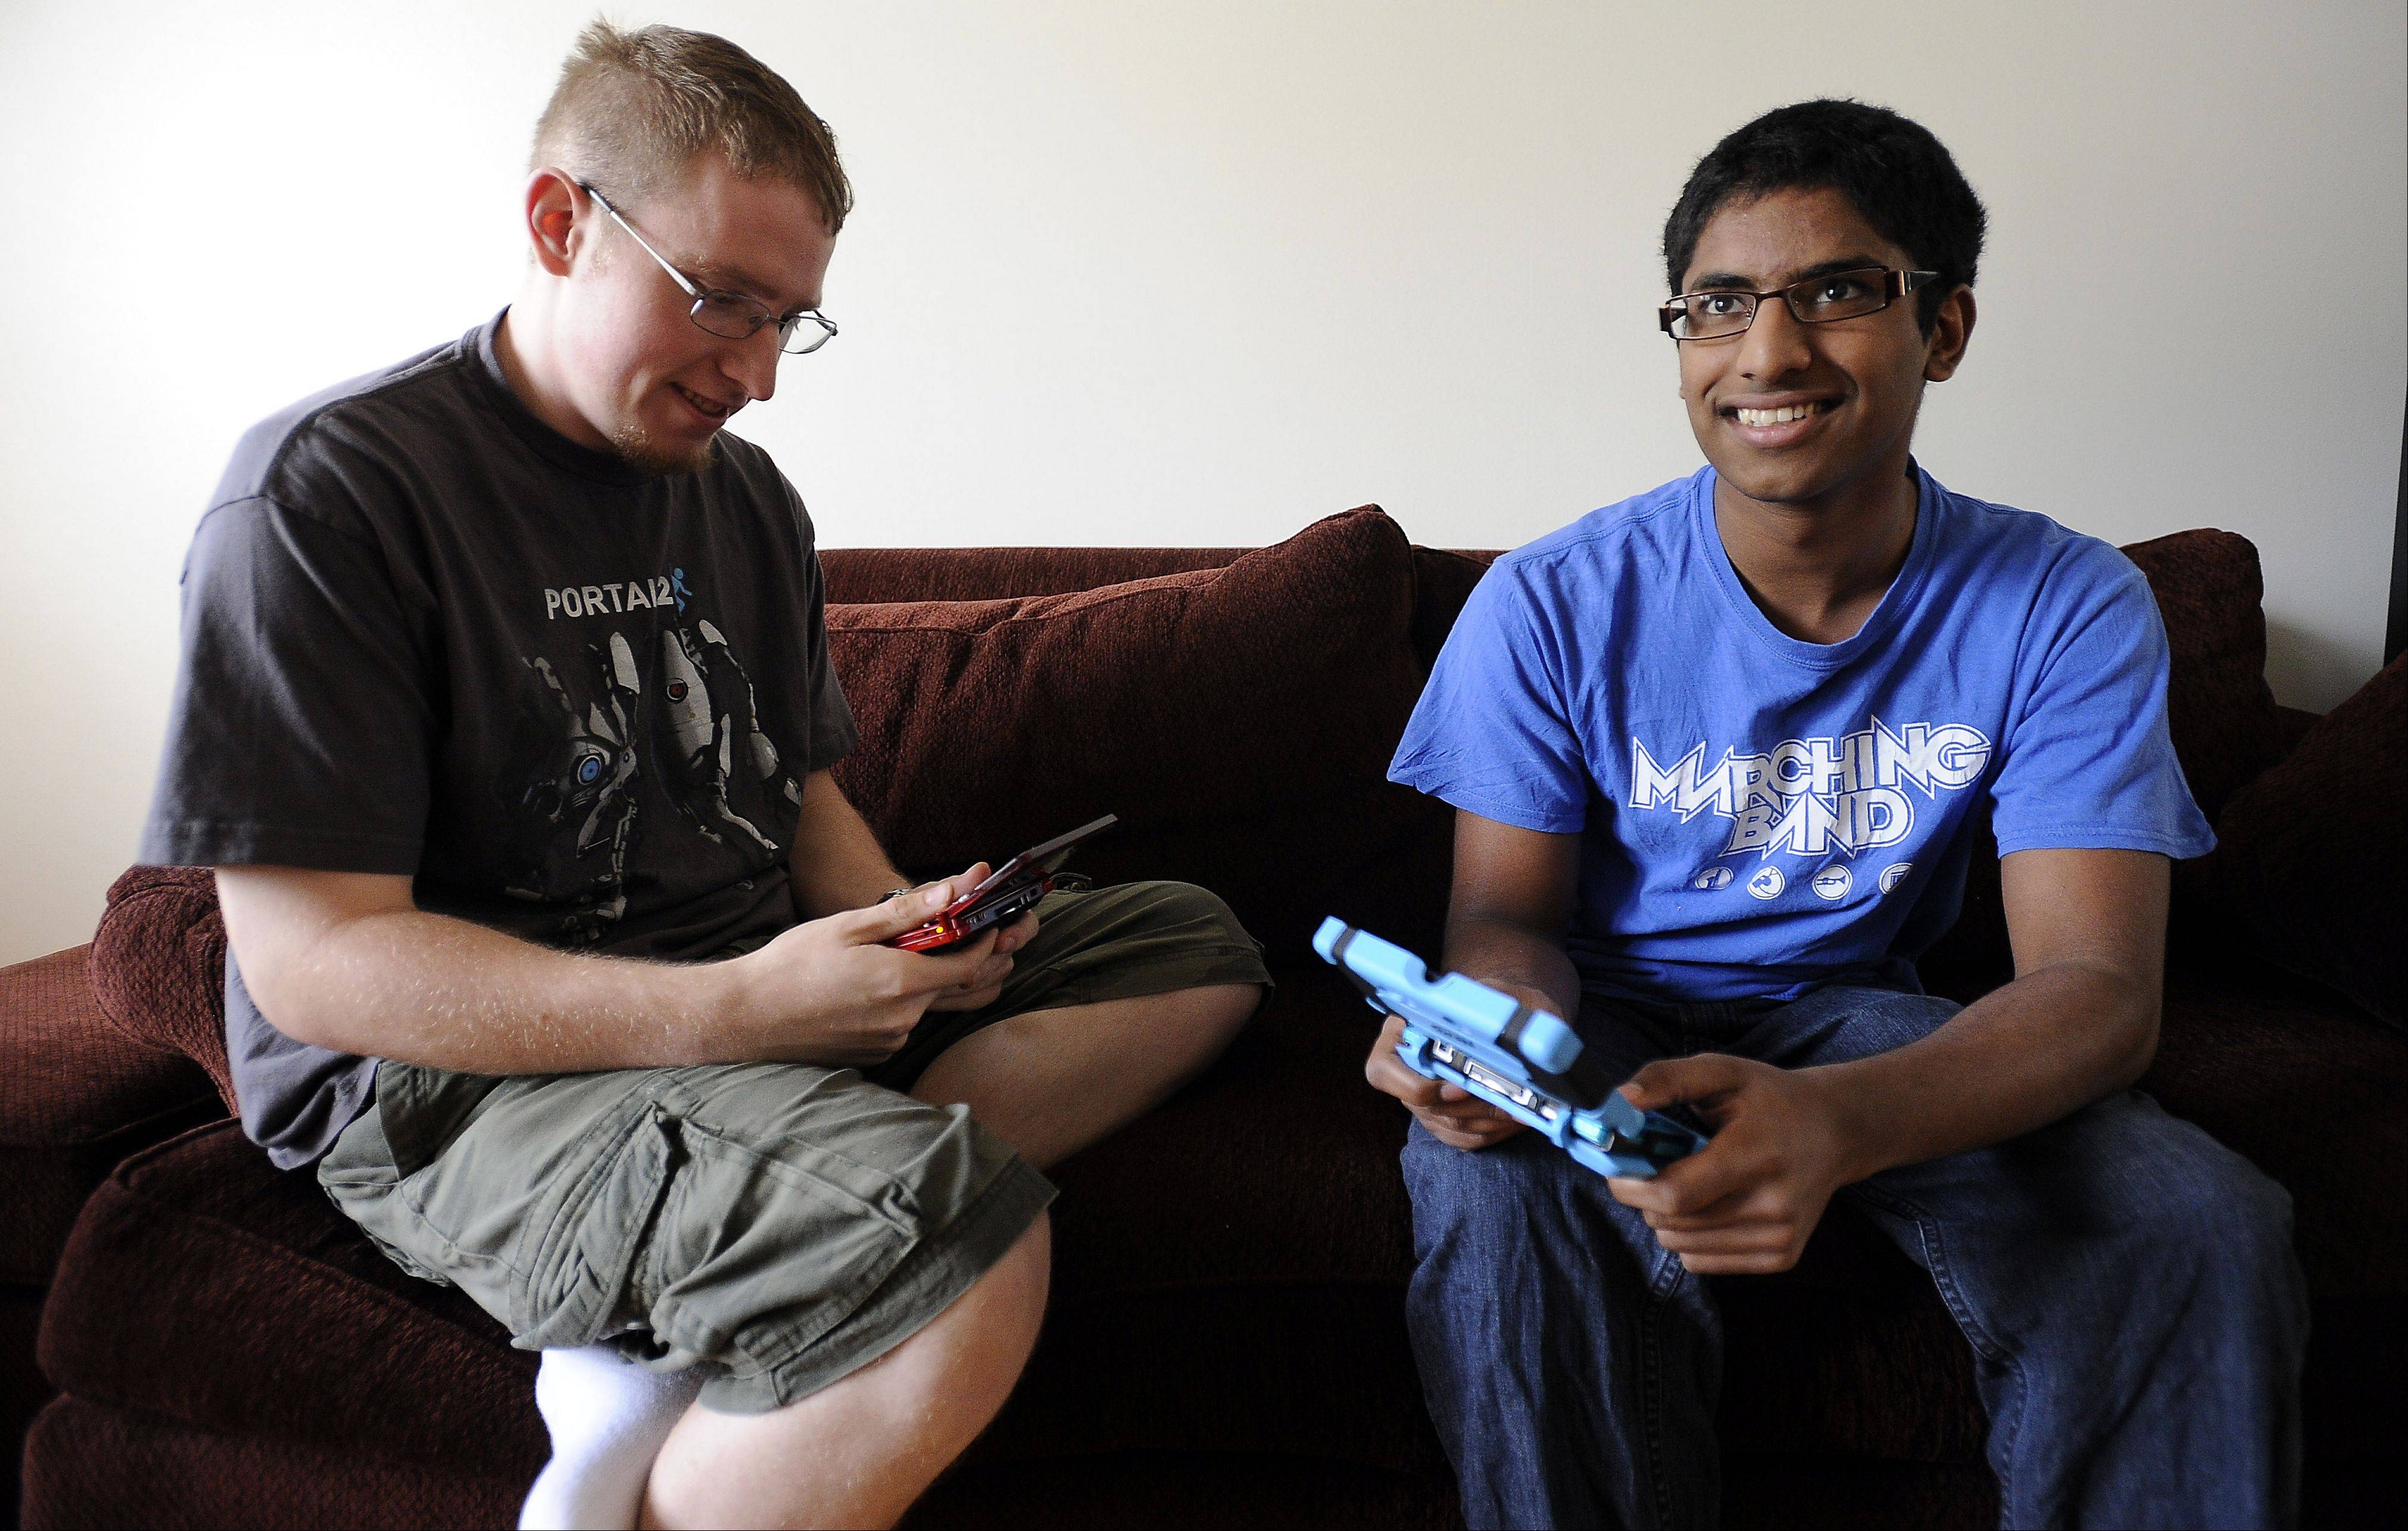 Manoj Sunny, 16, of Des Plaines is headed to Hawaii in August for the 2012 World Pokemon Championships. Here he practices with Eric Brooks, 20, of Des Plaines who keeps his skills sharp as they play the game.